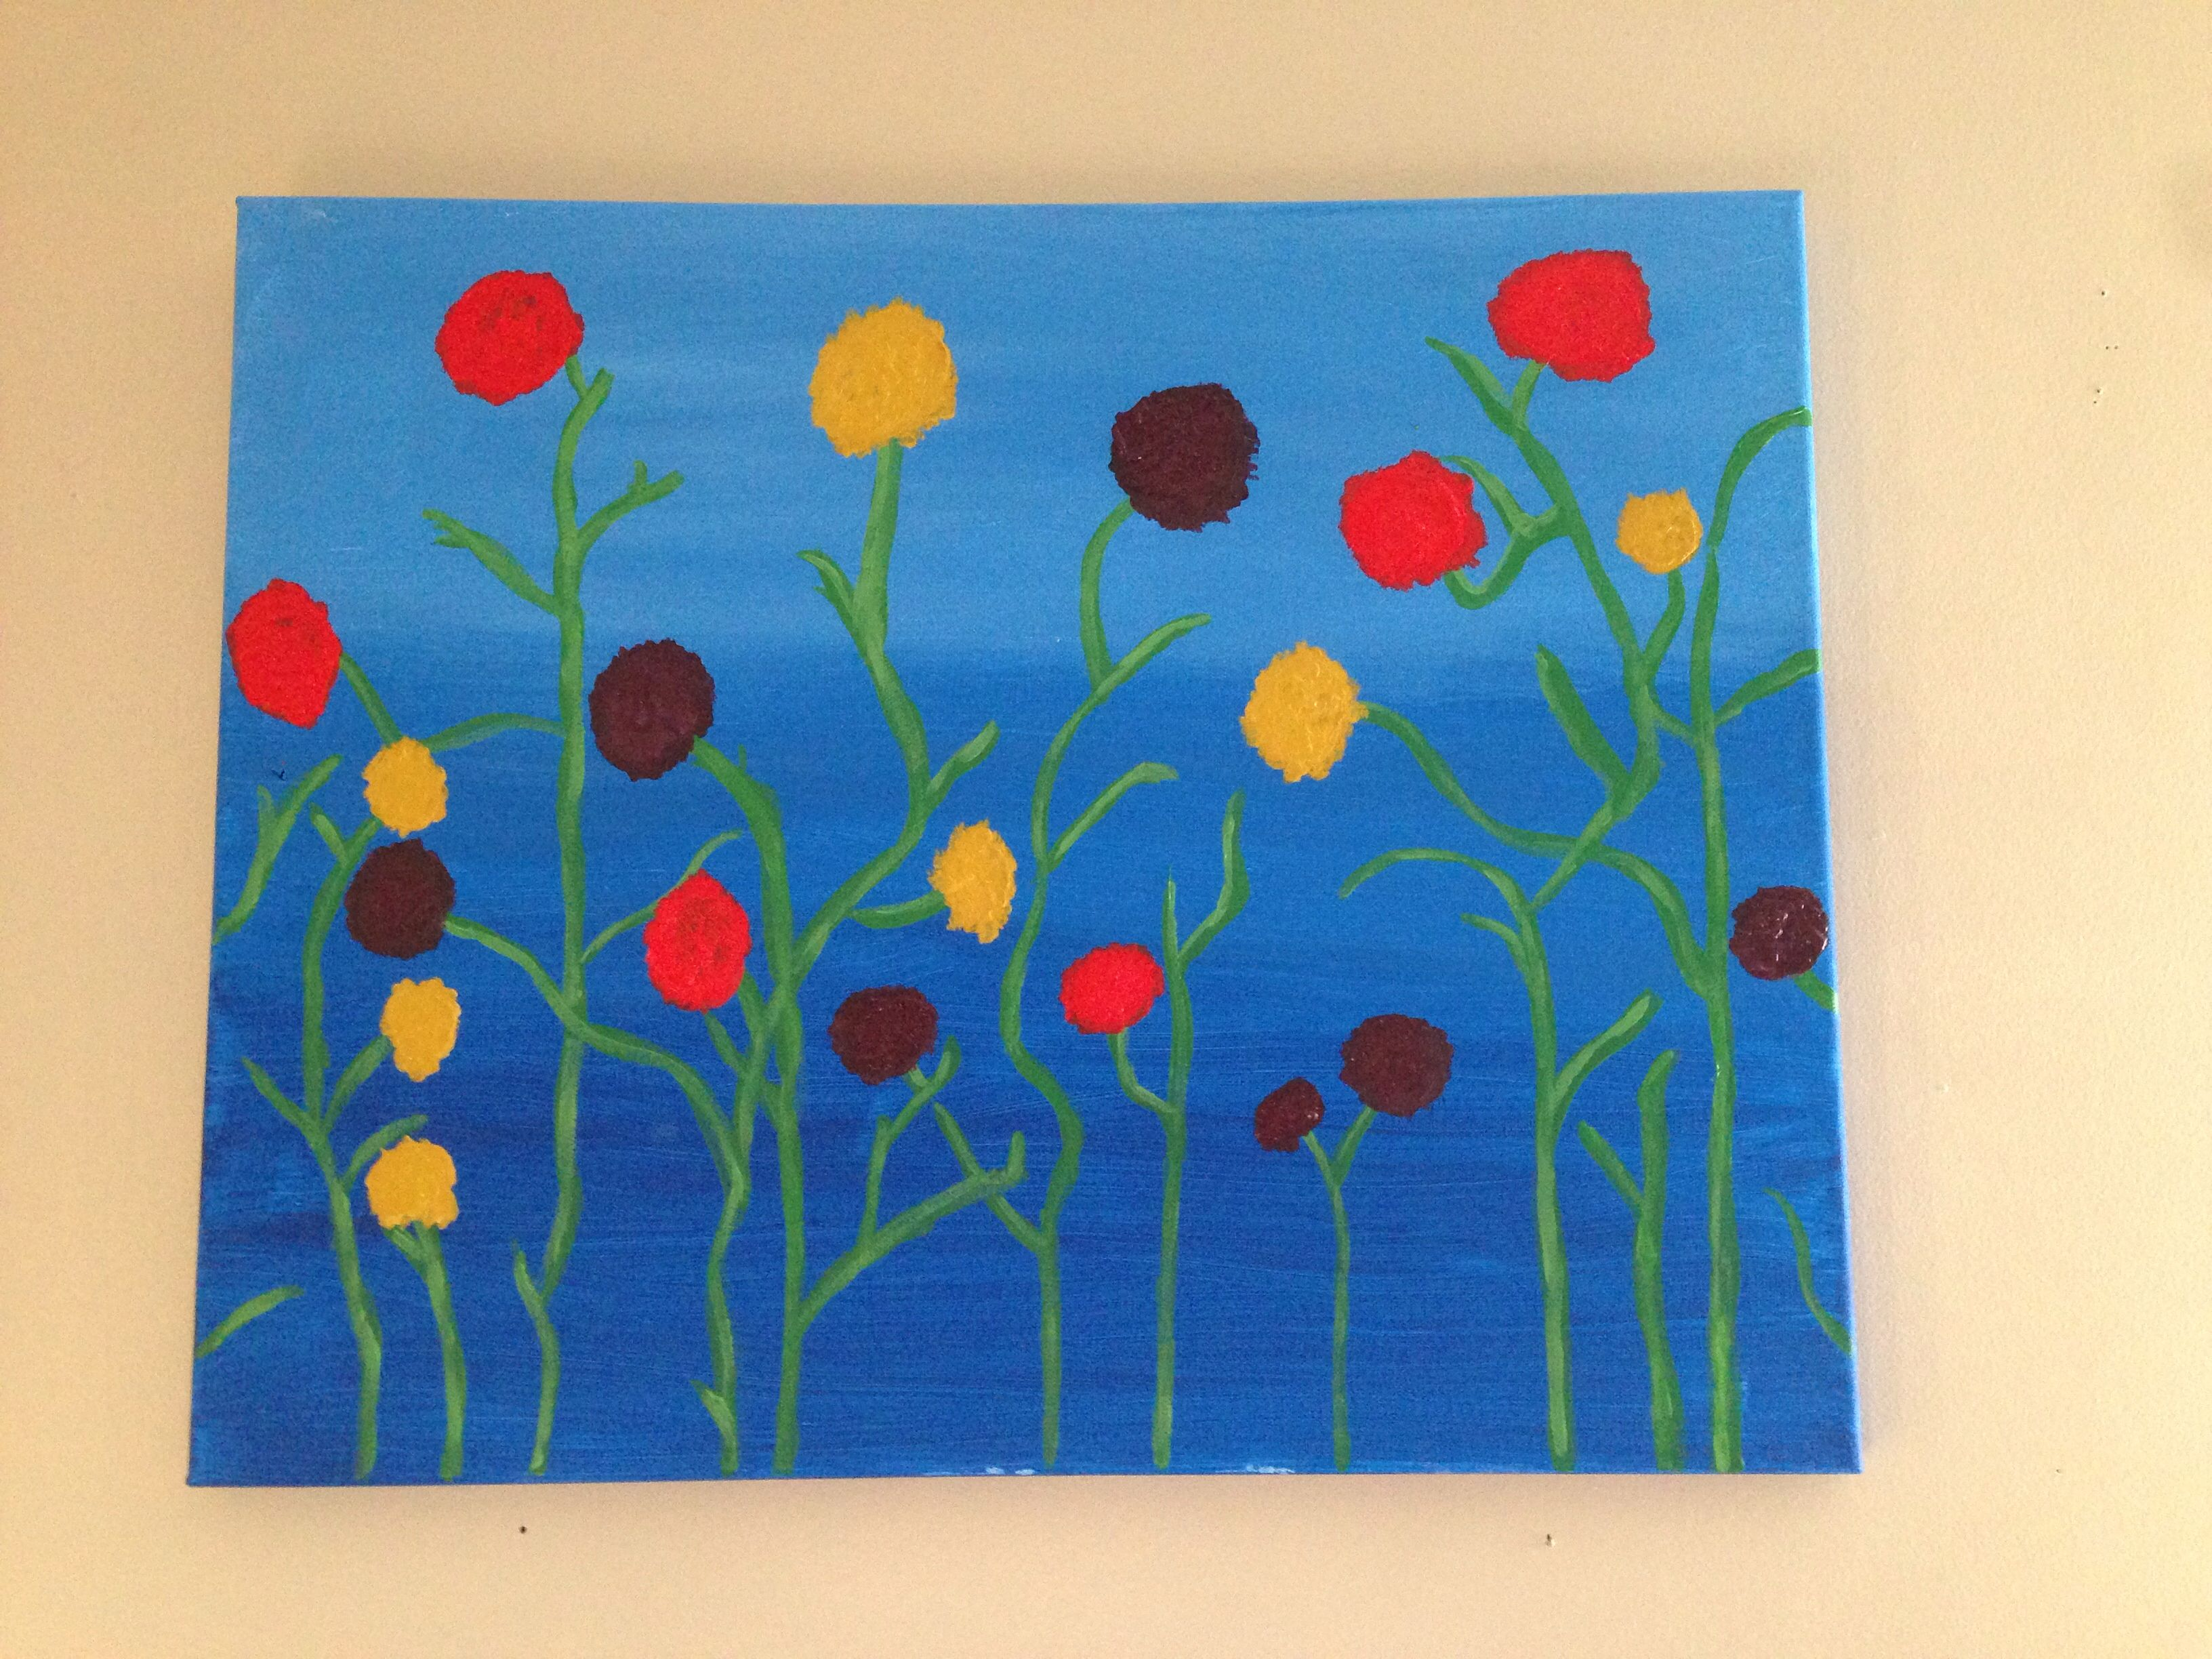 Easy acrylic painting painting ideas pinterest for Ideas for acrylic painting projects